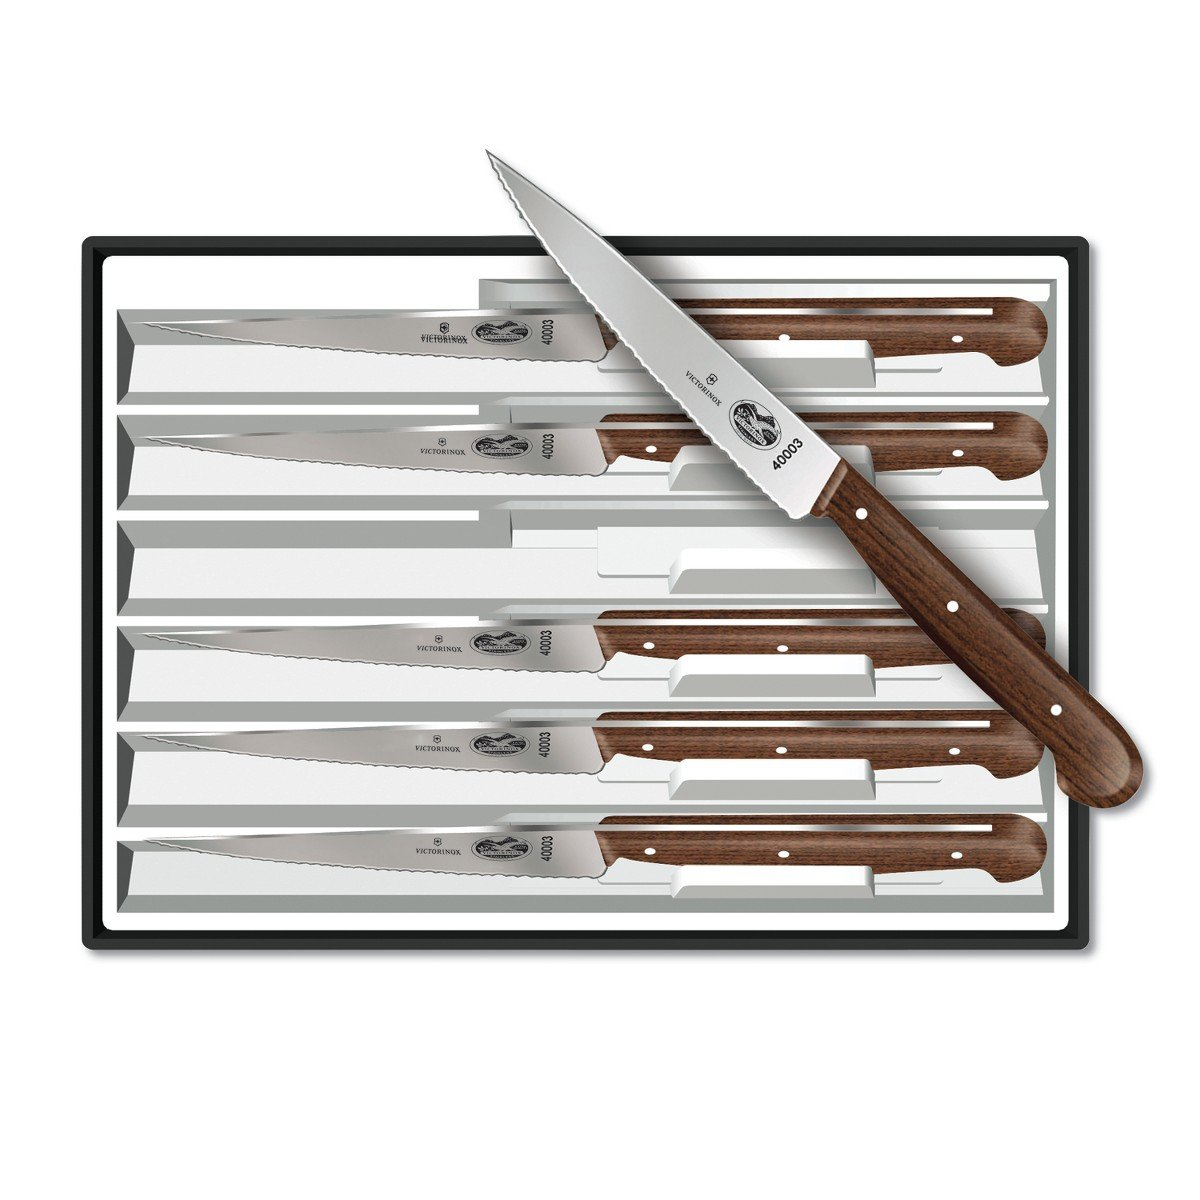 Victorinox 4-3/4-Inch Wavy-Edge Spear-Tip Steak Knife, Set of 6, Rosewood Handles